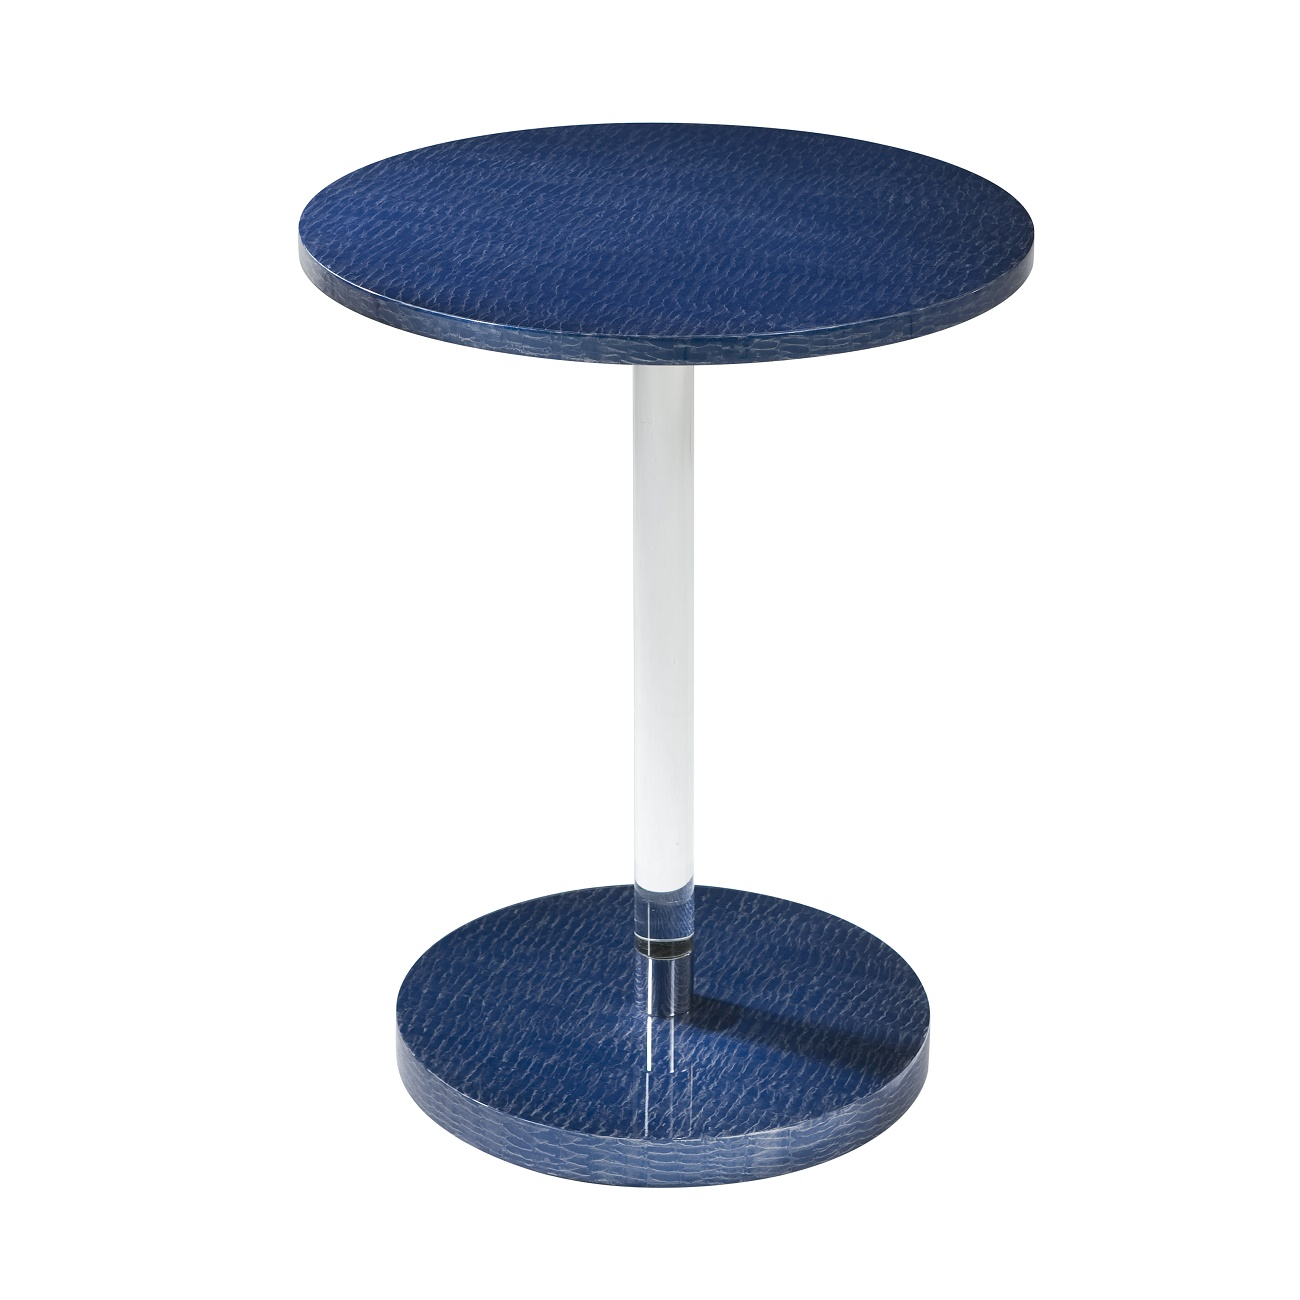 Striate Ii Accent Table,Theodore Alexander Table, Brooklyn, New York, Furniture by ABD